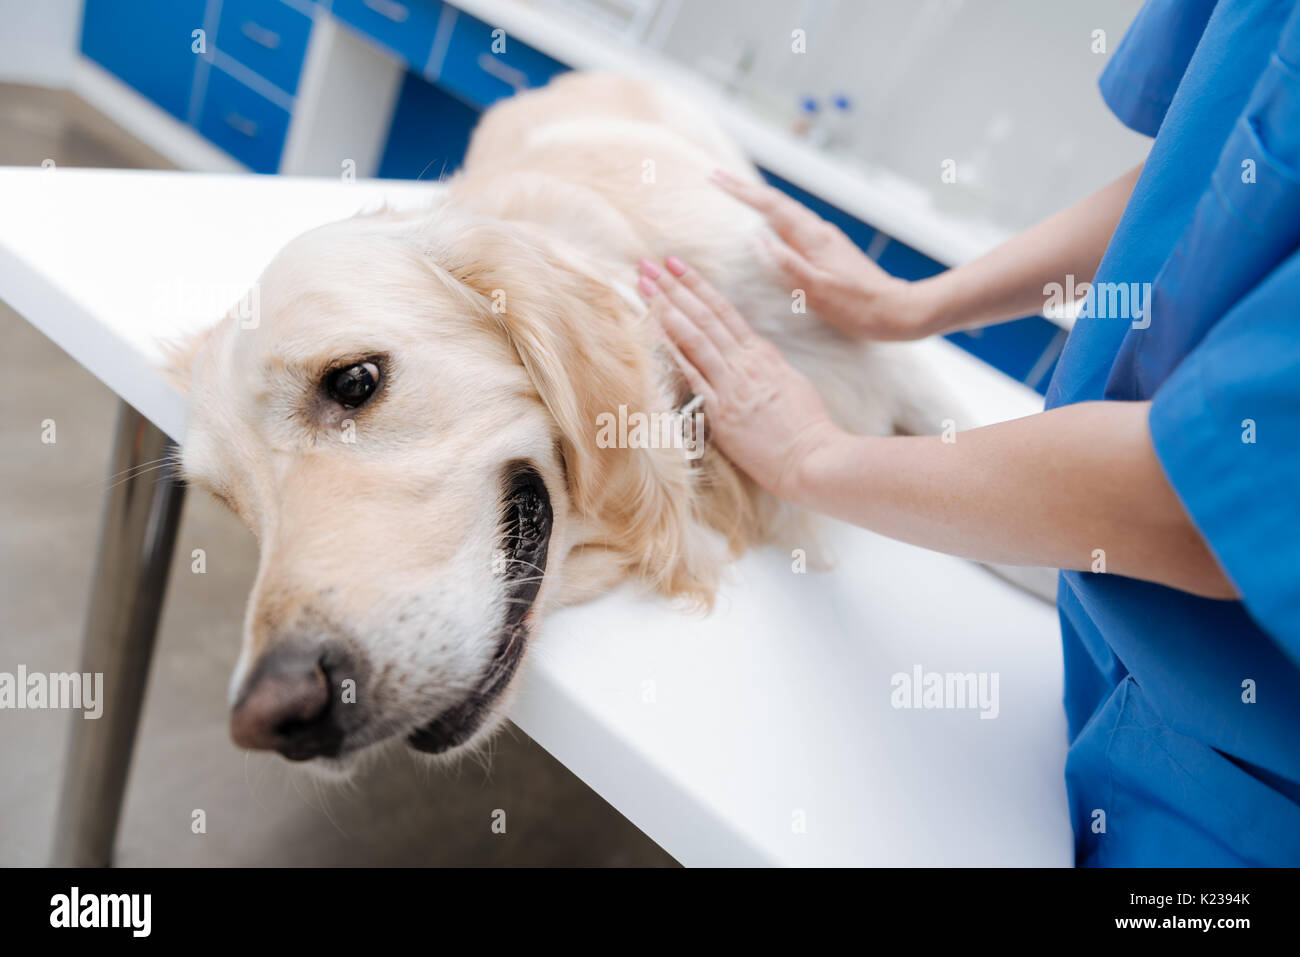 Close up of worried dog that preparing for examination - Stock Image